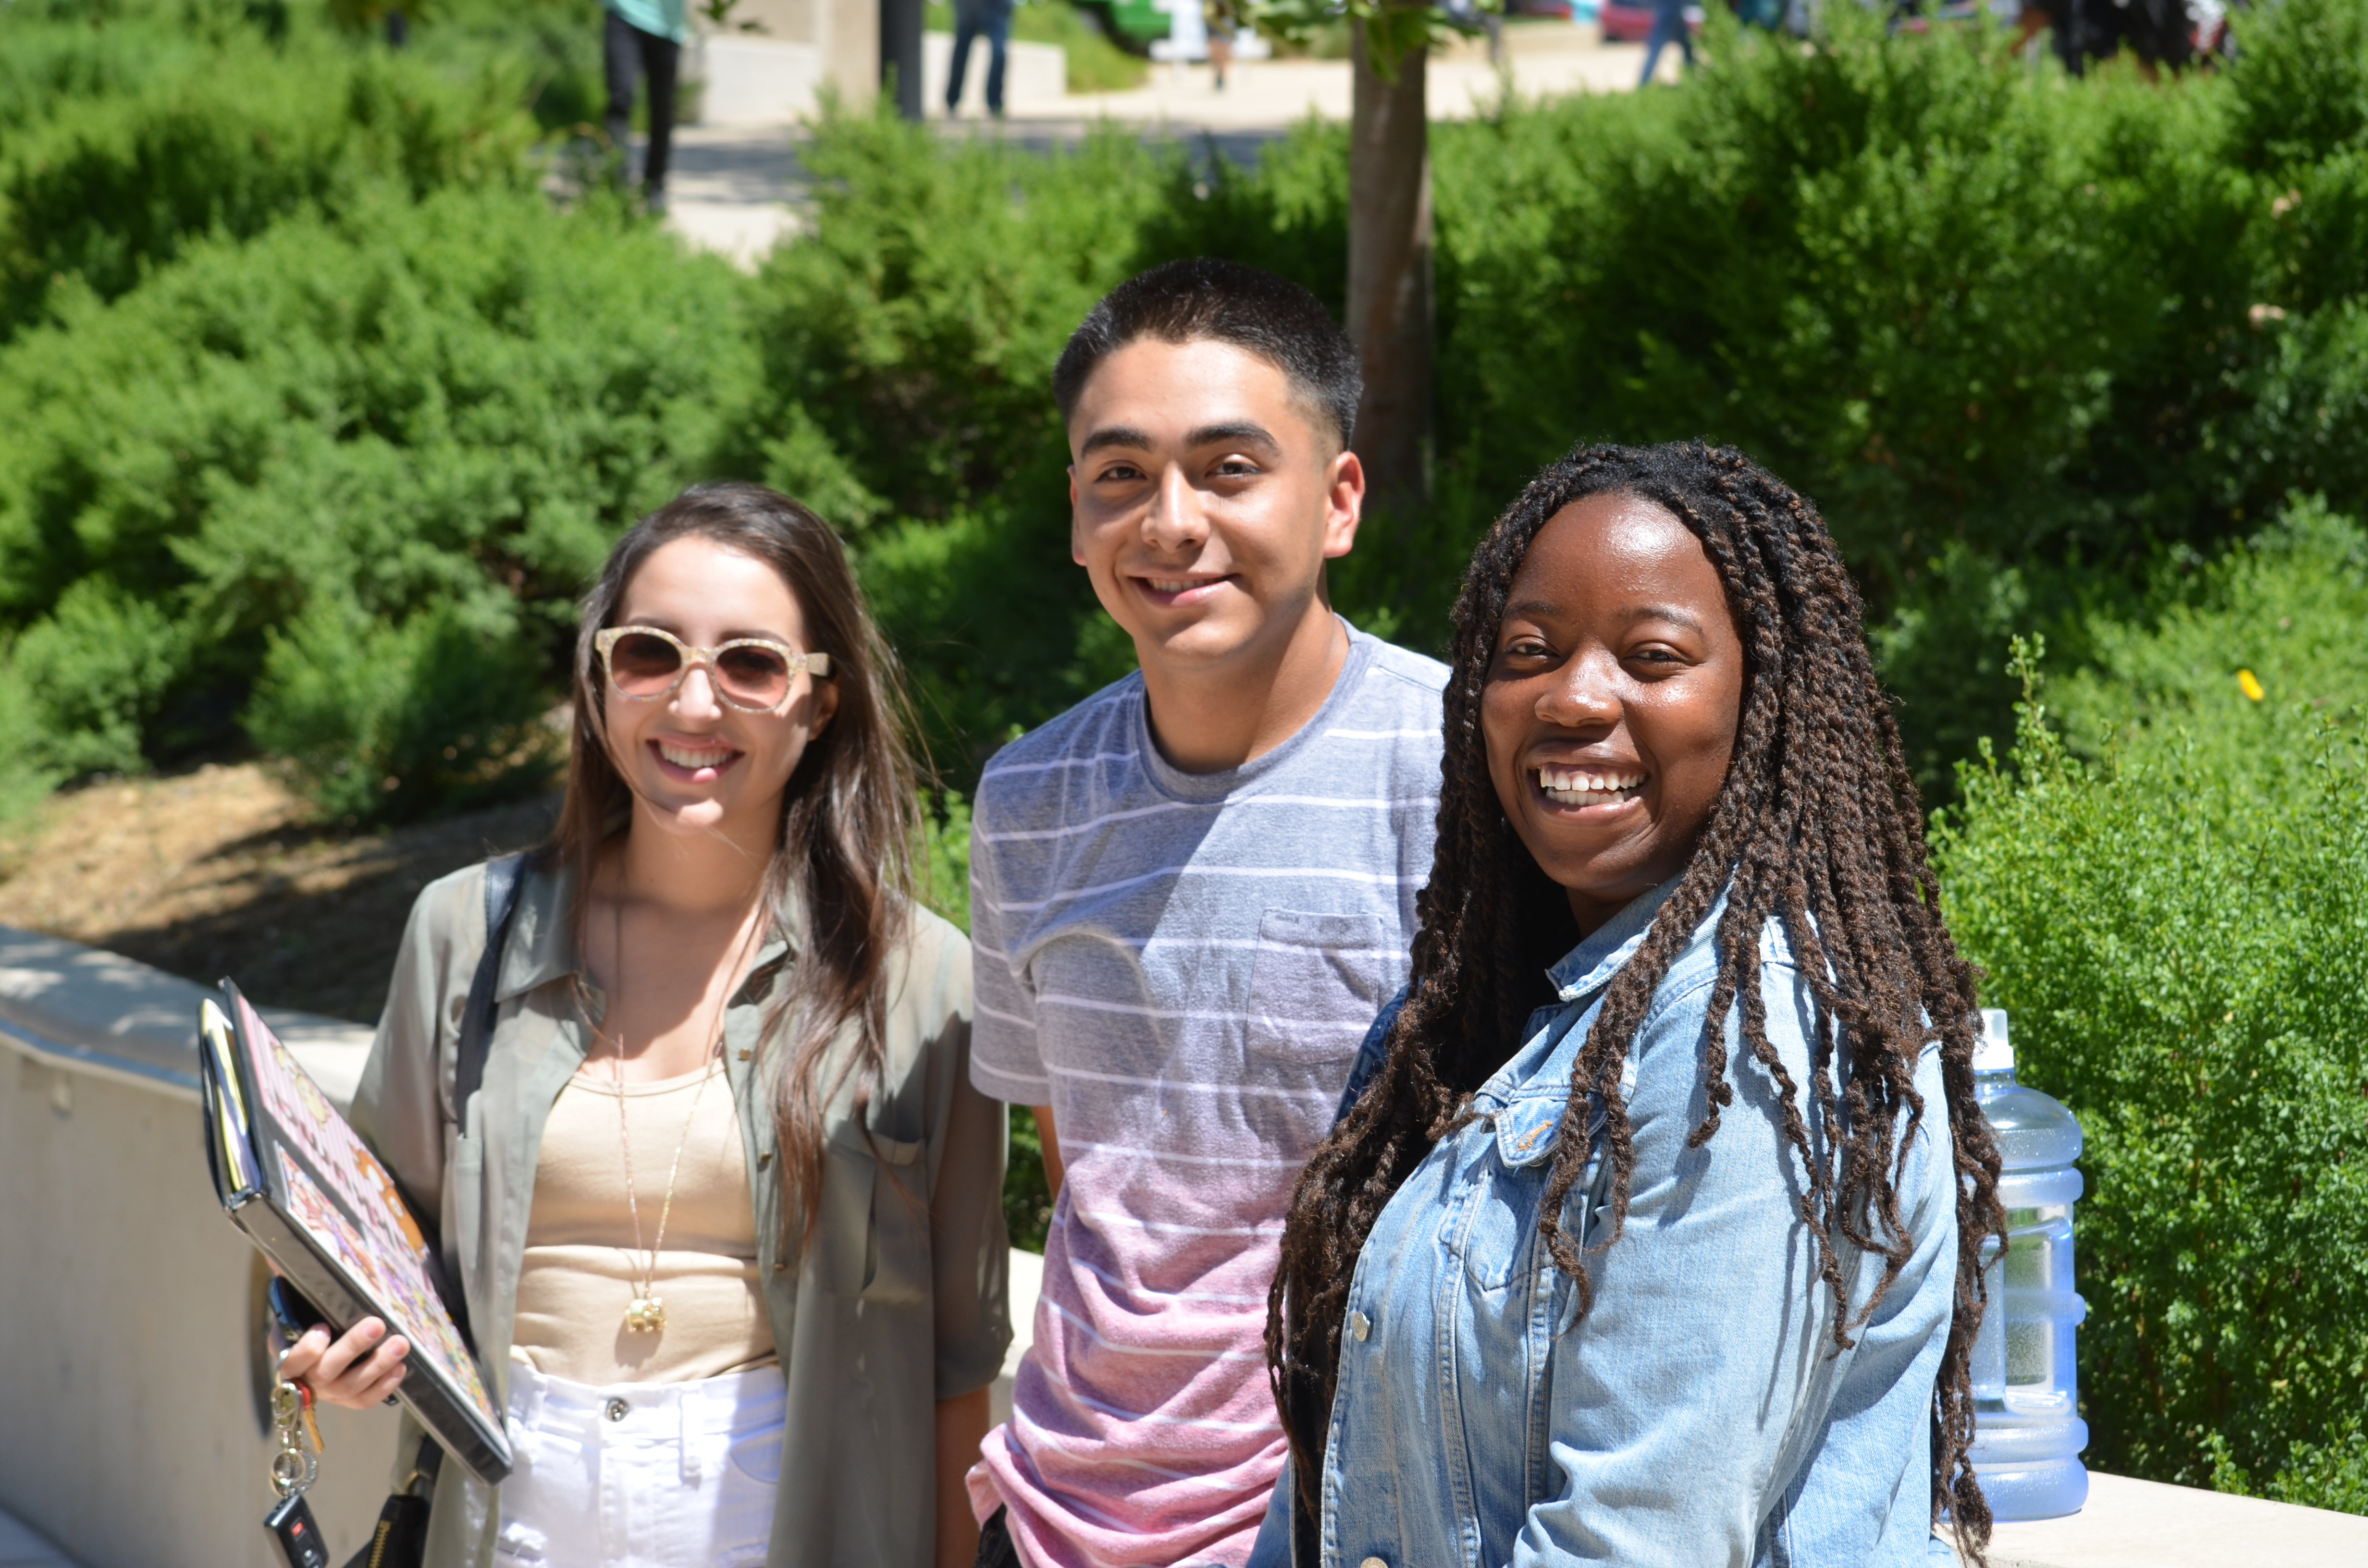 Three Crafton Hills College students smiling